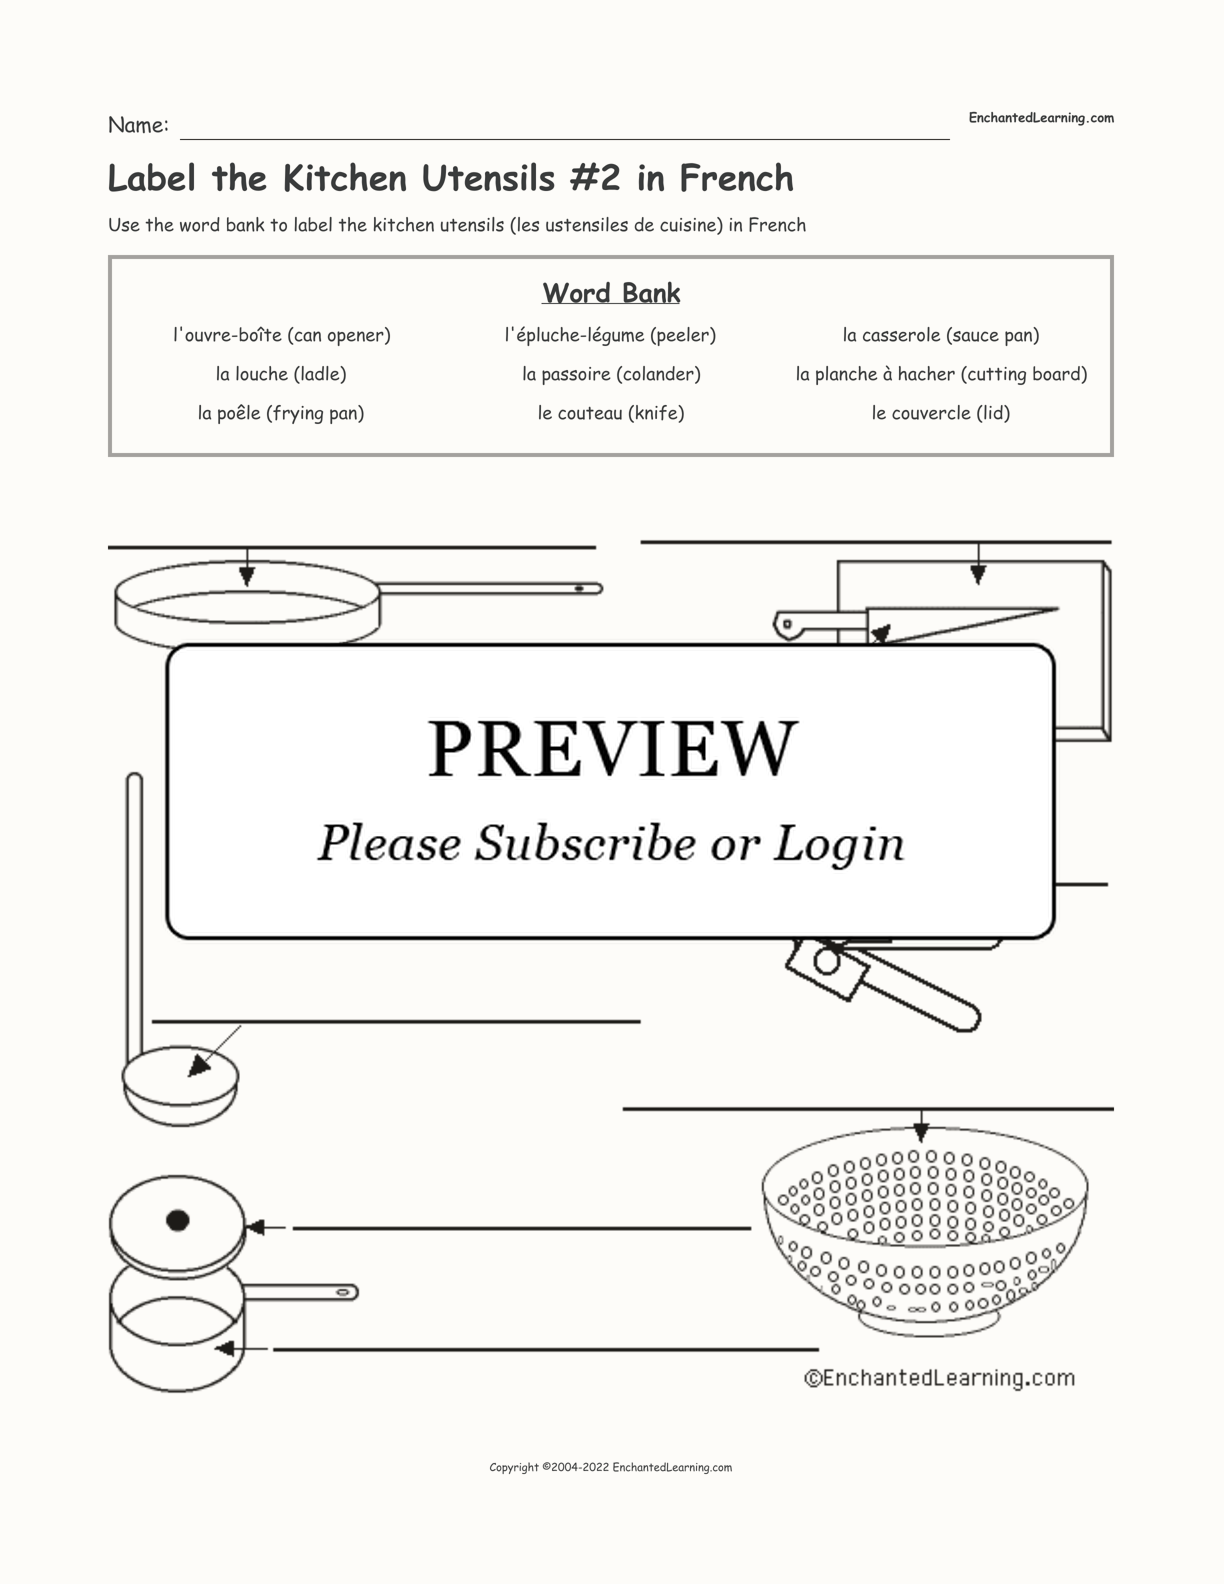 Label the Kitchen Utensils #2 in French interactive worksheet page 1